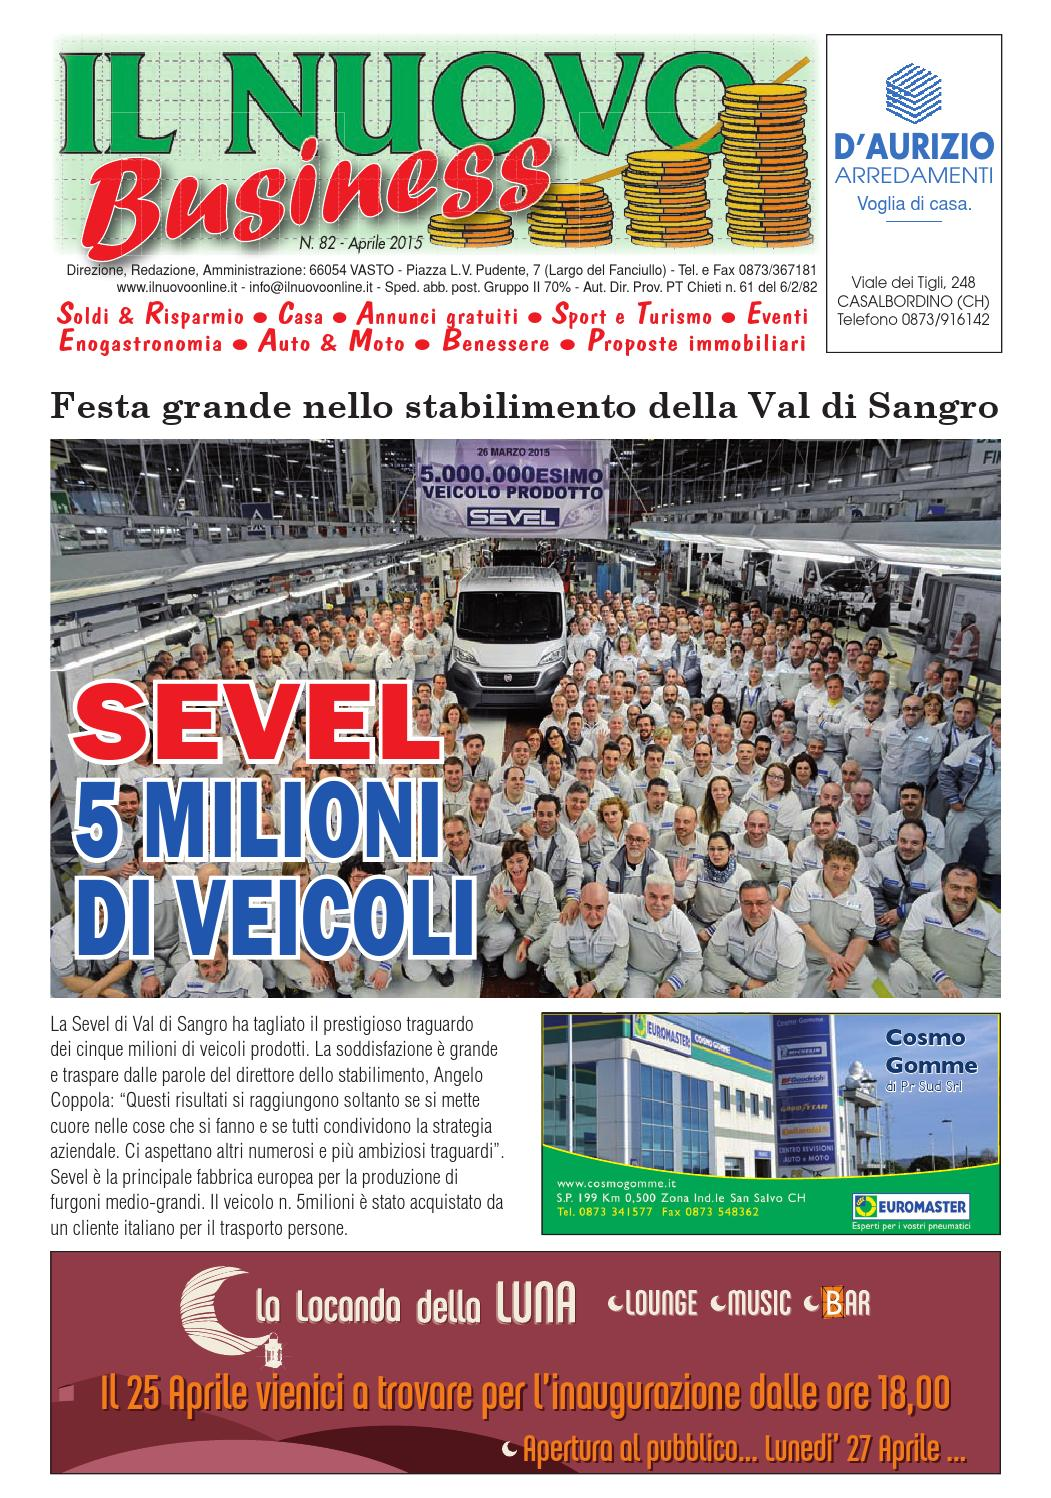 Businessaprile2015 by nicolangelo gualtieri issuu for Gualtieri arredamenti